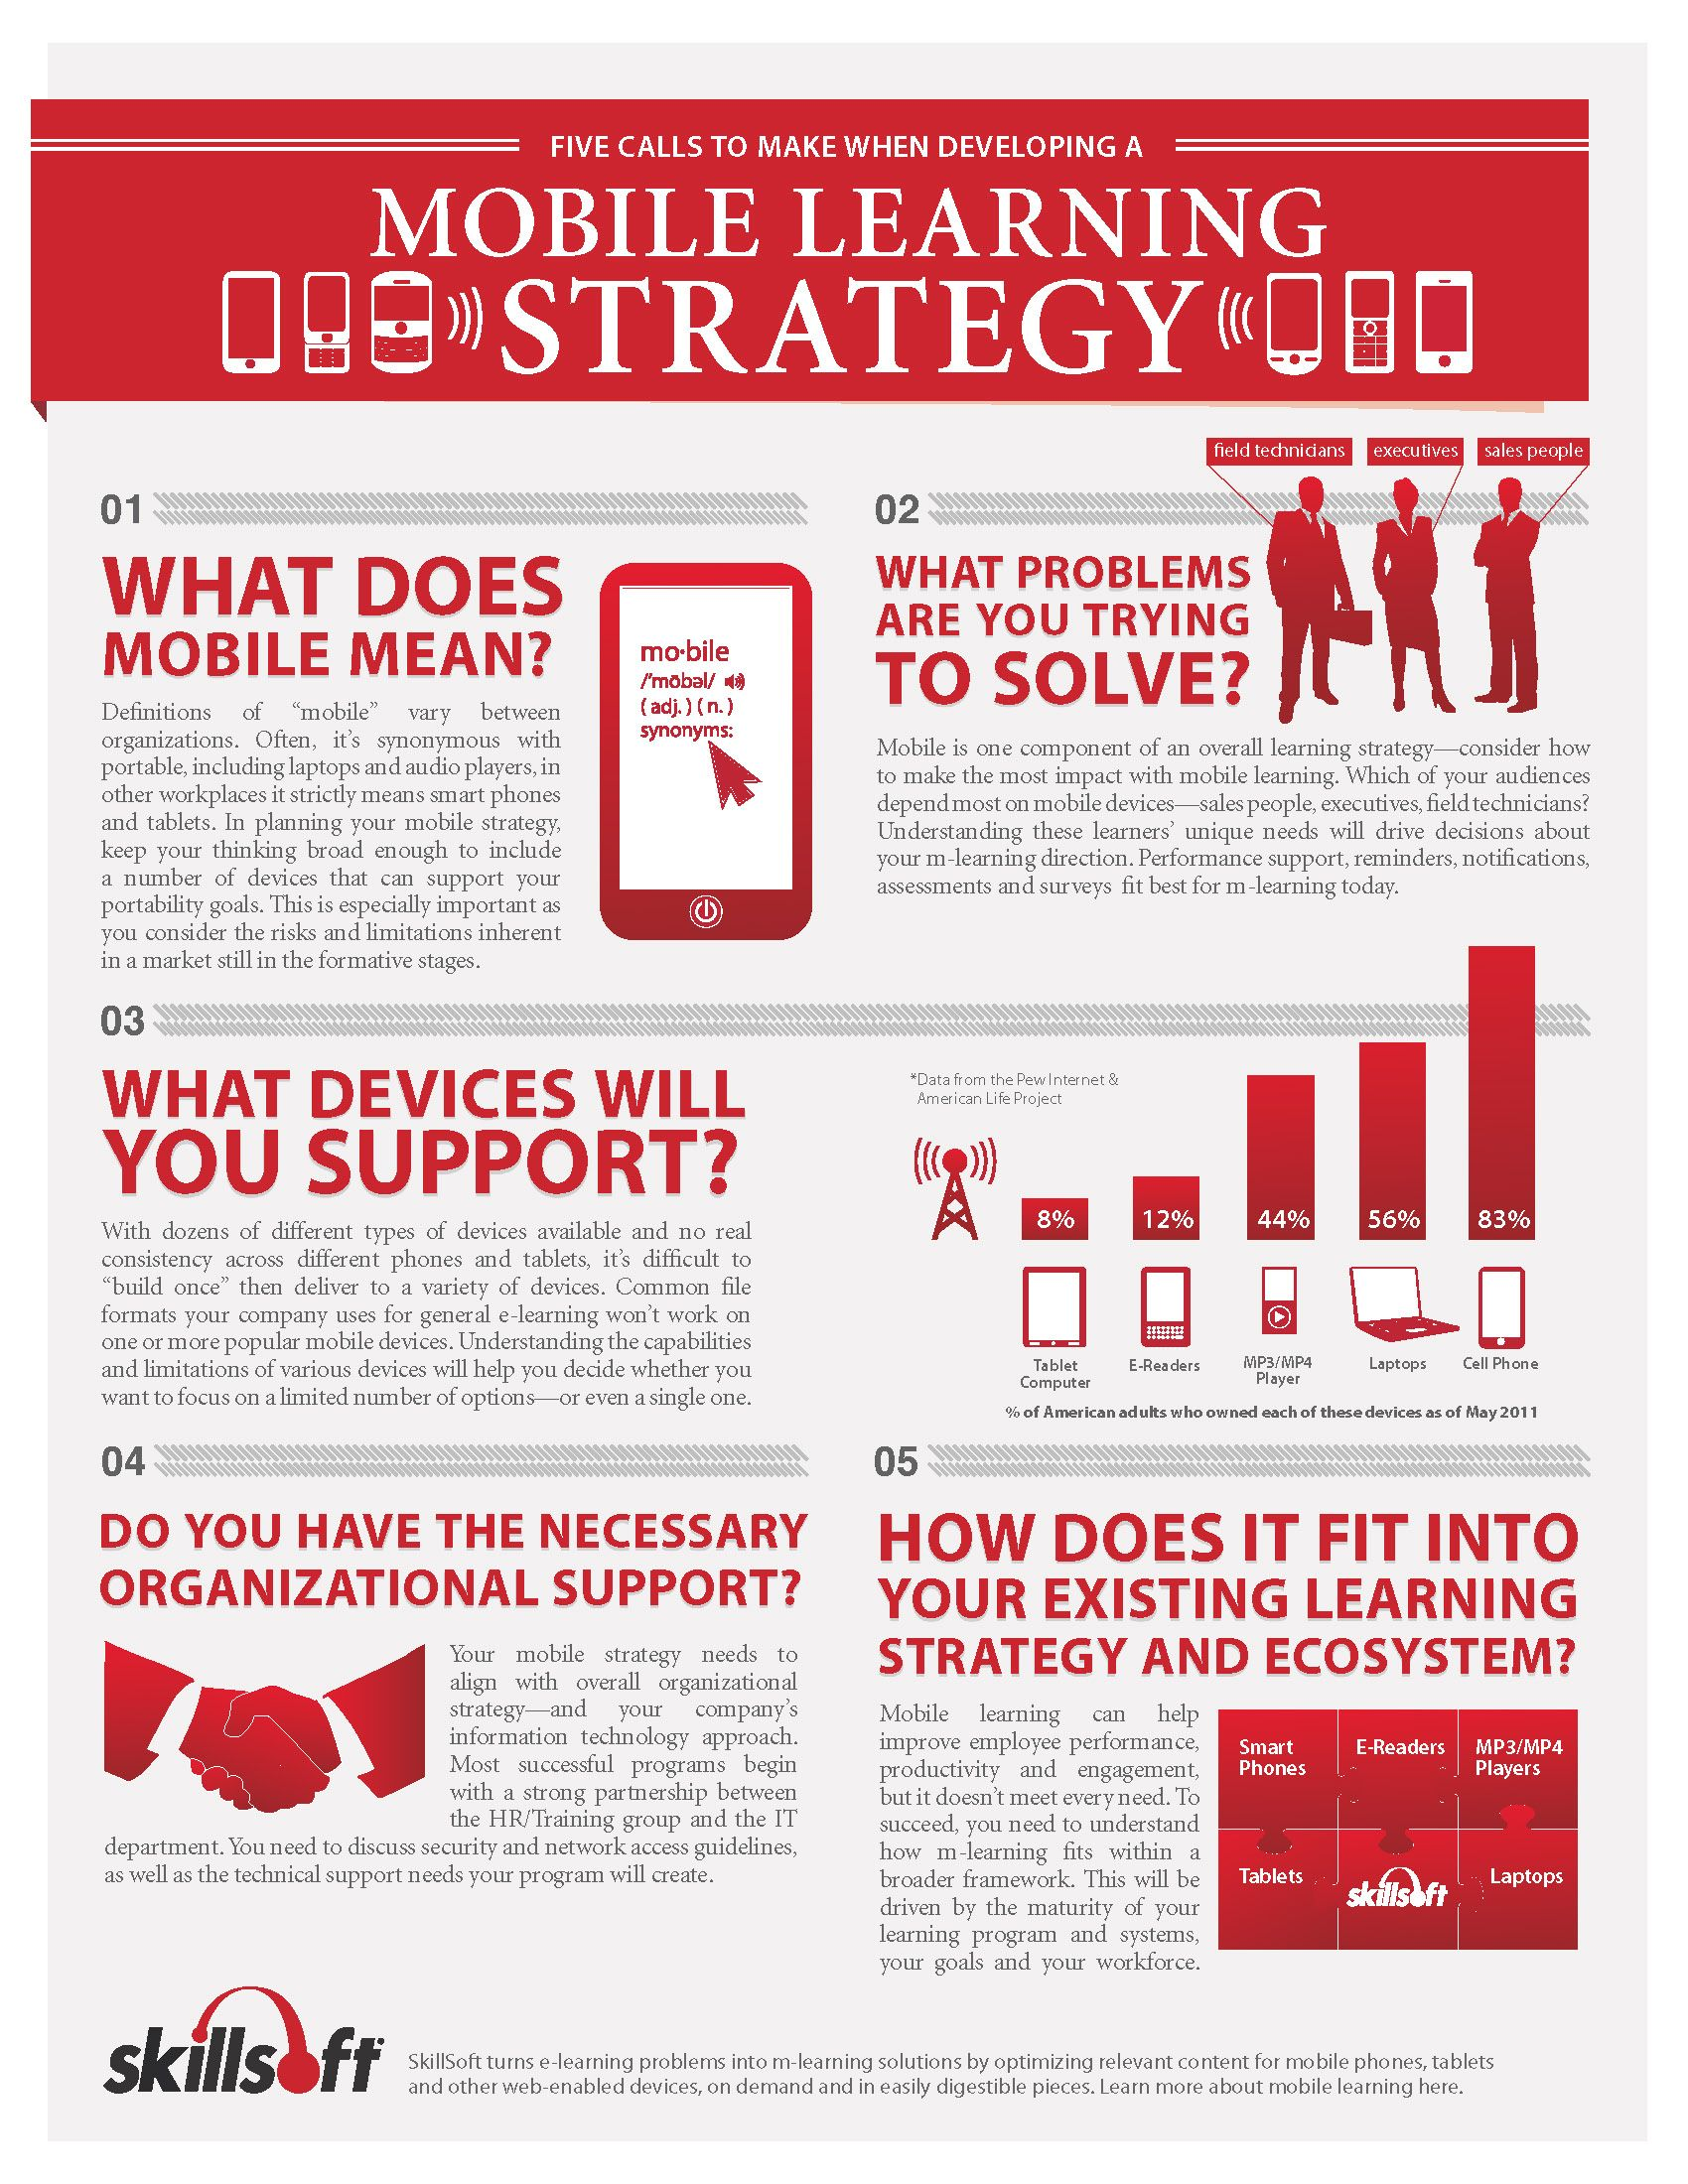 Five Calls to Make When Developing a Mobile Learning Strategy (#INFOGRAPHIC)  #mlearning